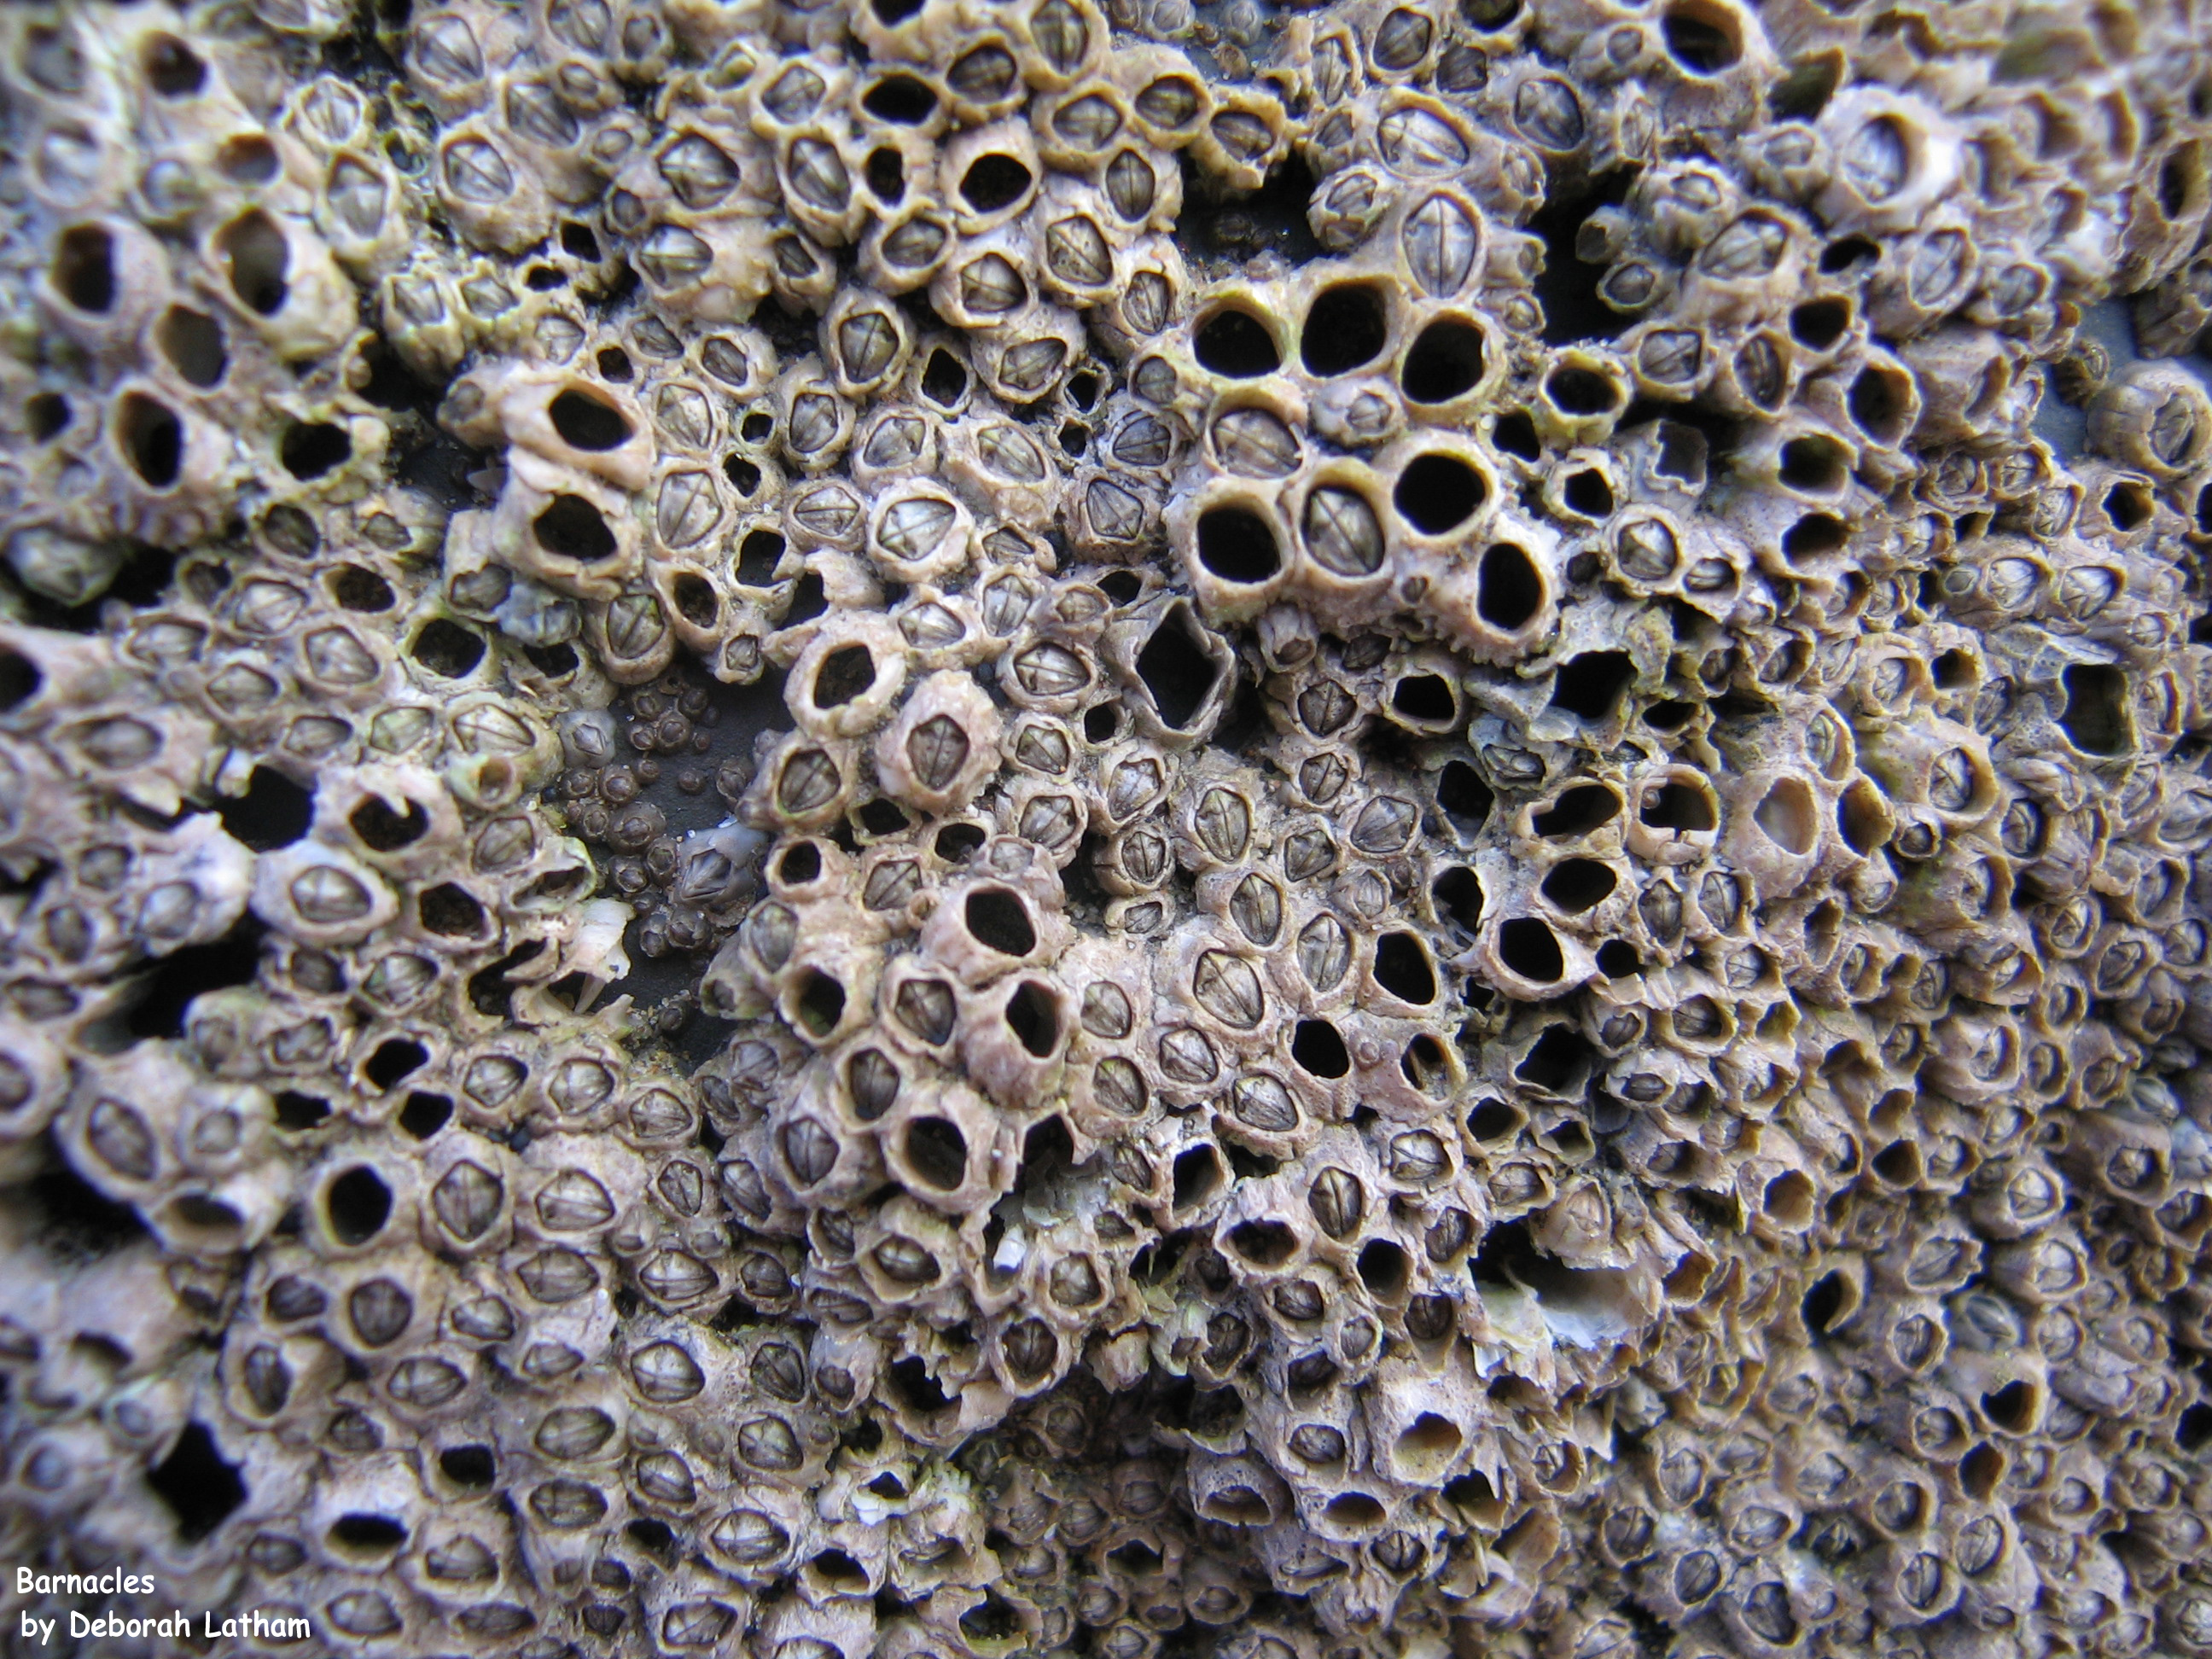 Full Article Assessment Of Trypophobia And An Analysis Of Its